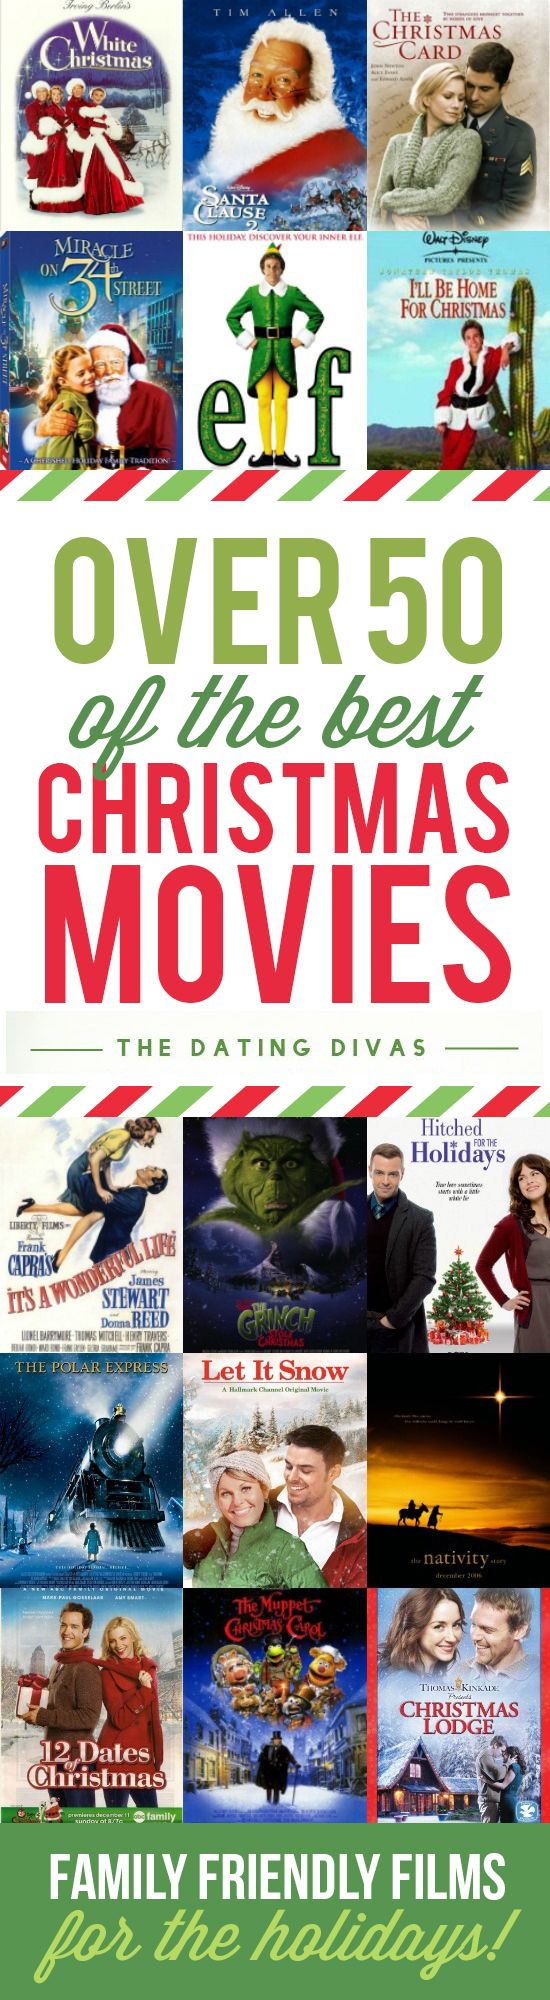 50 of the best Christmas movies all in one place! These are family-friendly films